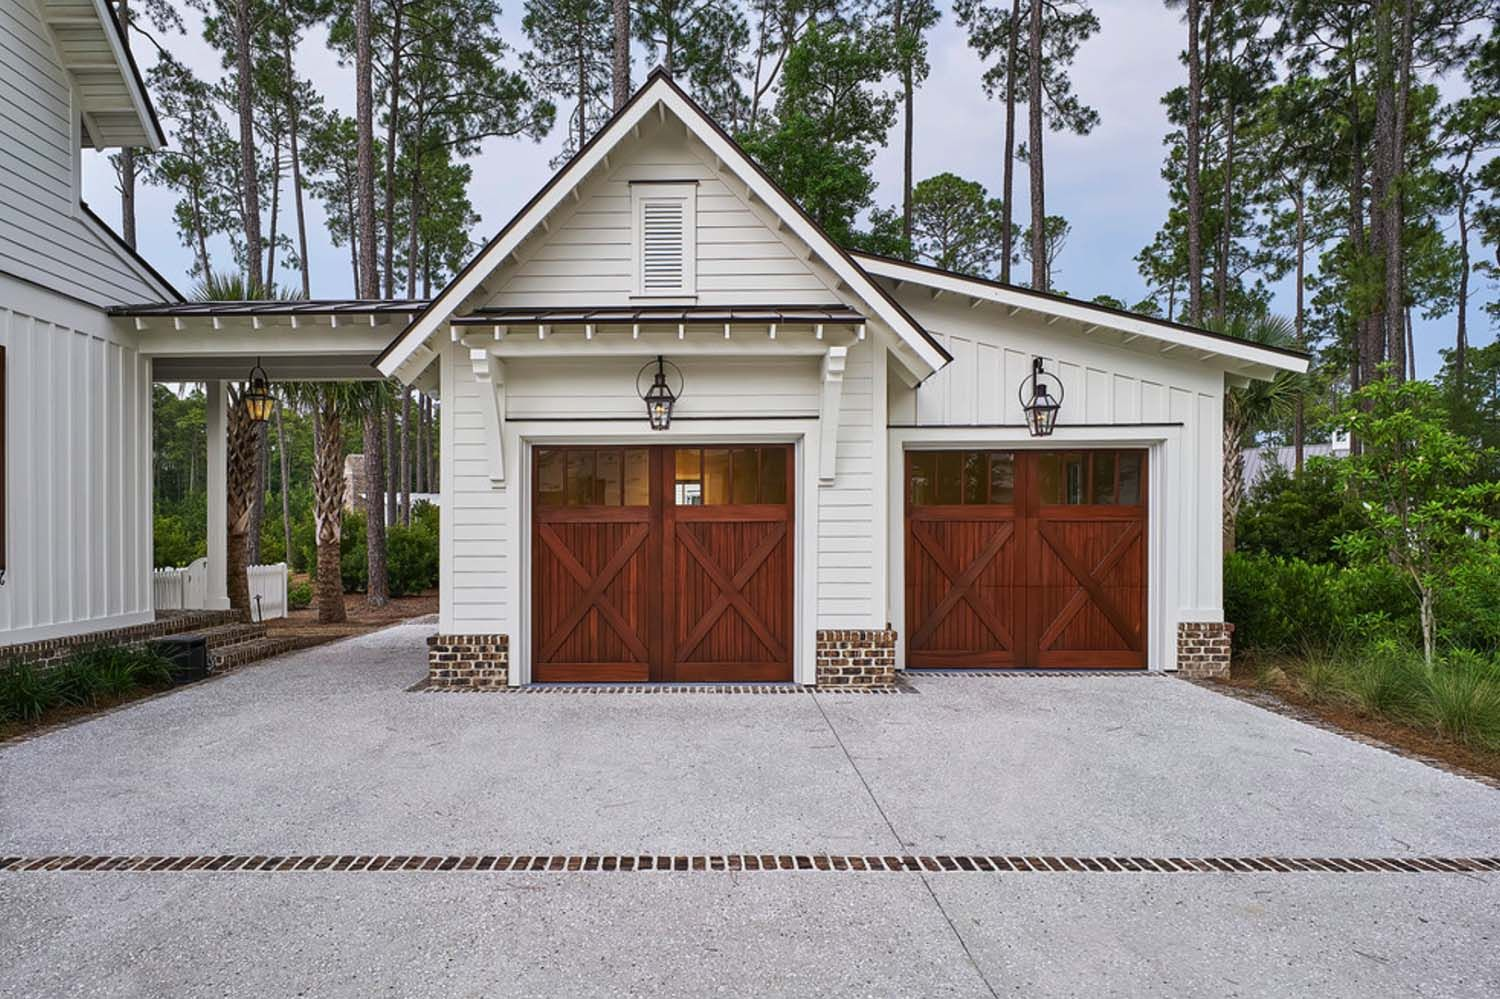 Exquisite south carolina farmhouse evoking a low country style small garage ideas small garage door